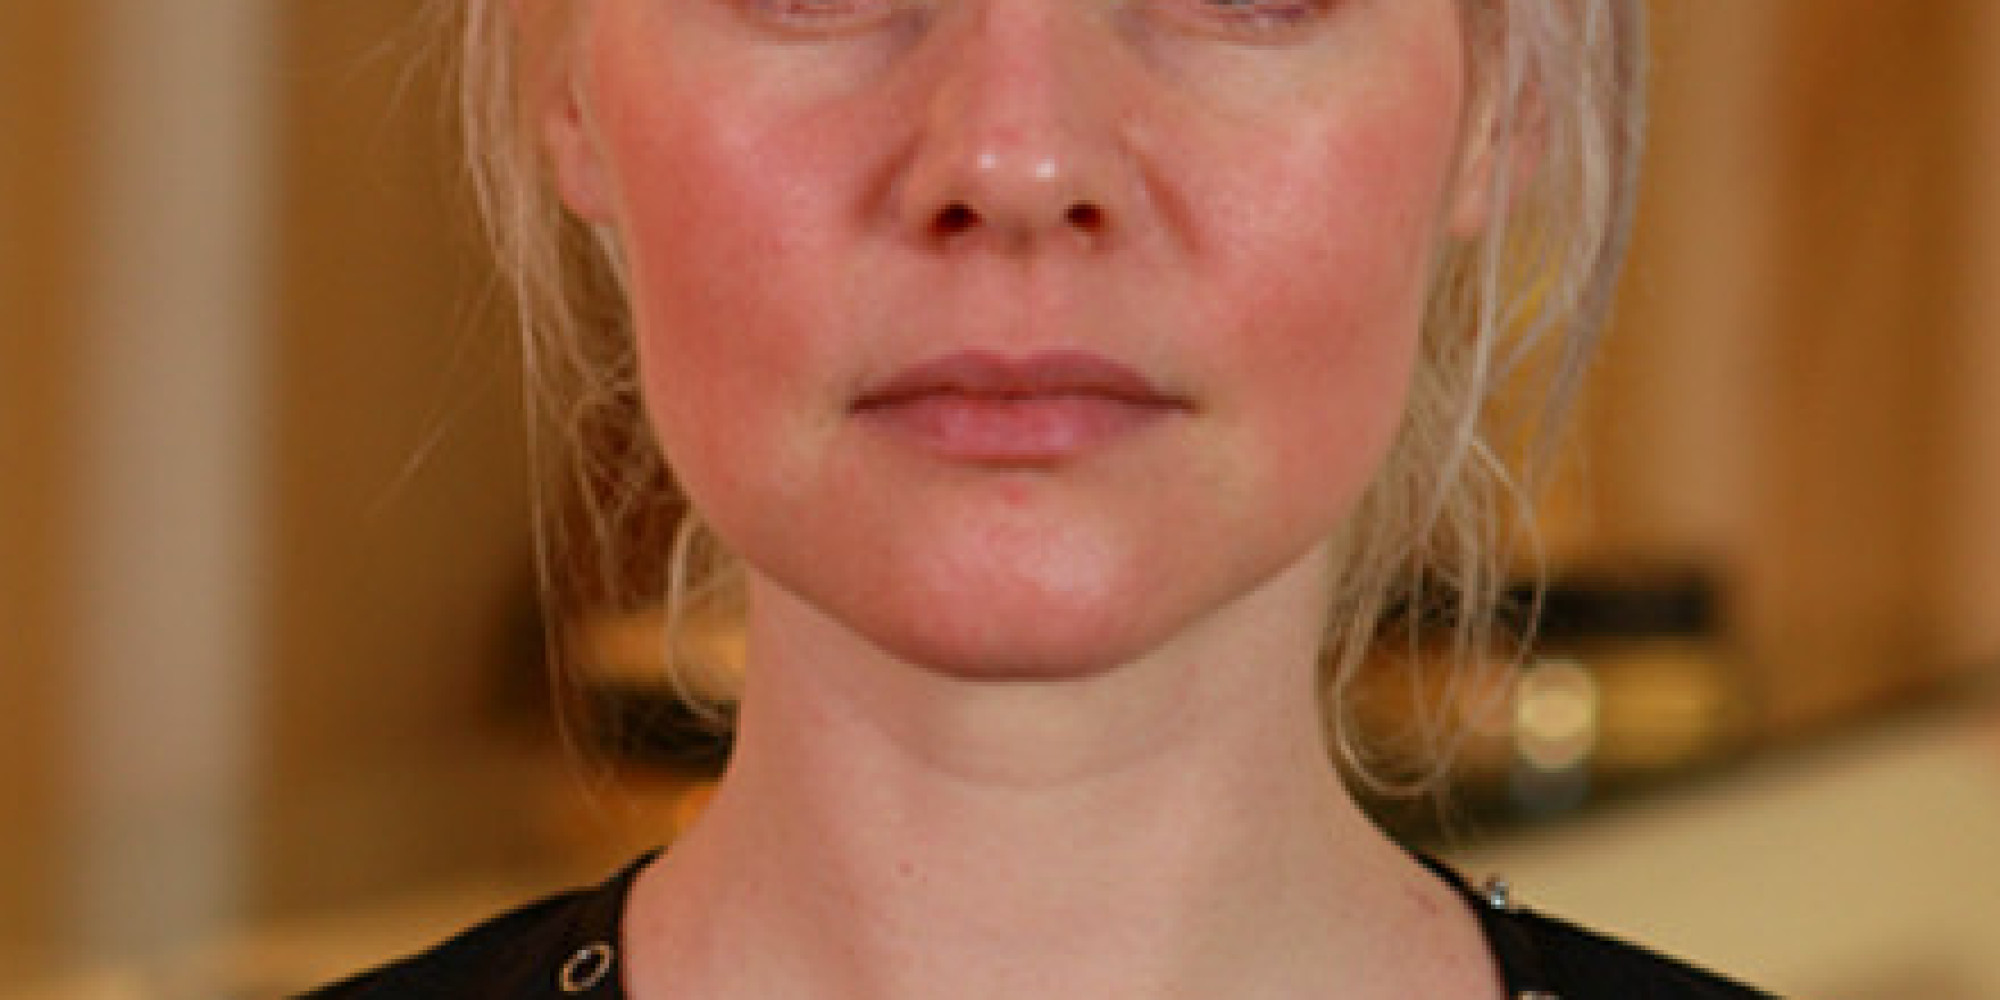 What People With Rosacea Need To Know About Concealing Redness & Treating  Flareups  Huffpost